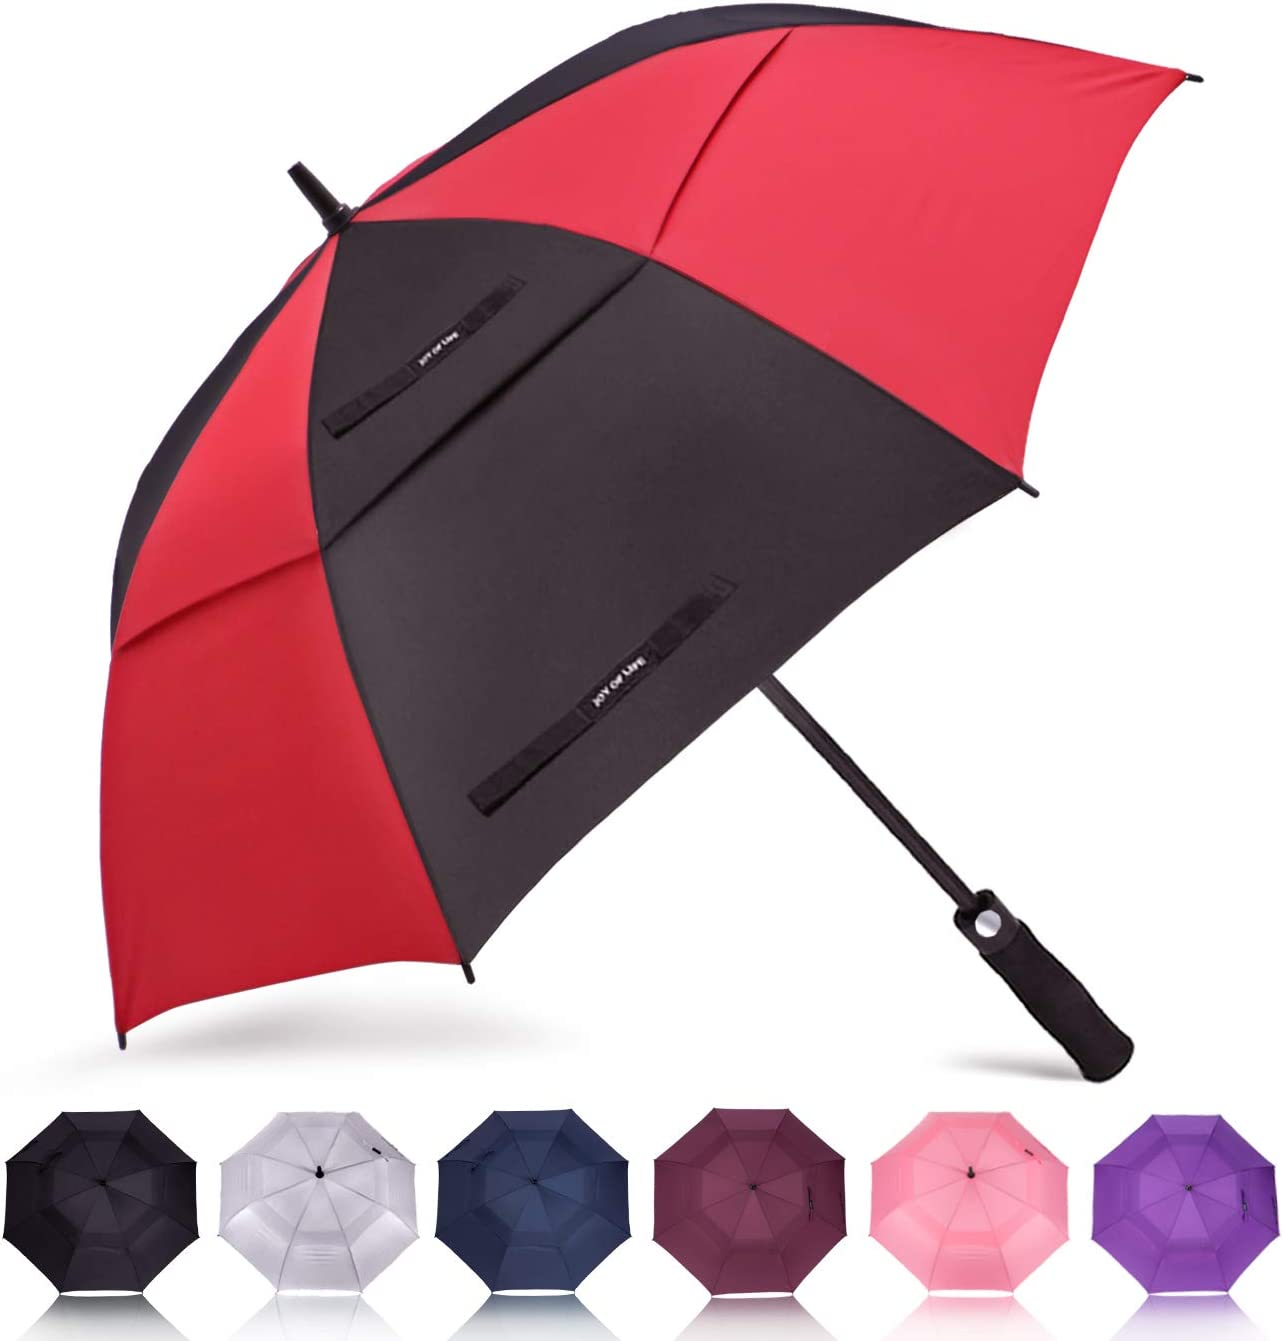 ZOMAKE Golf Umbrella 58/62/68 Inch, Large Windproof Umbrellas Automatic Open Oversize Rain Umbrella with Double Canopy for Men - Vented Stick Umbrellas